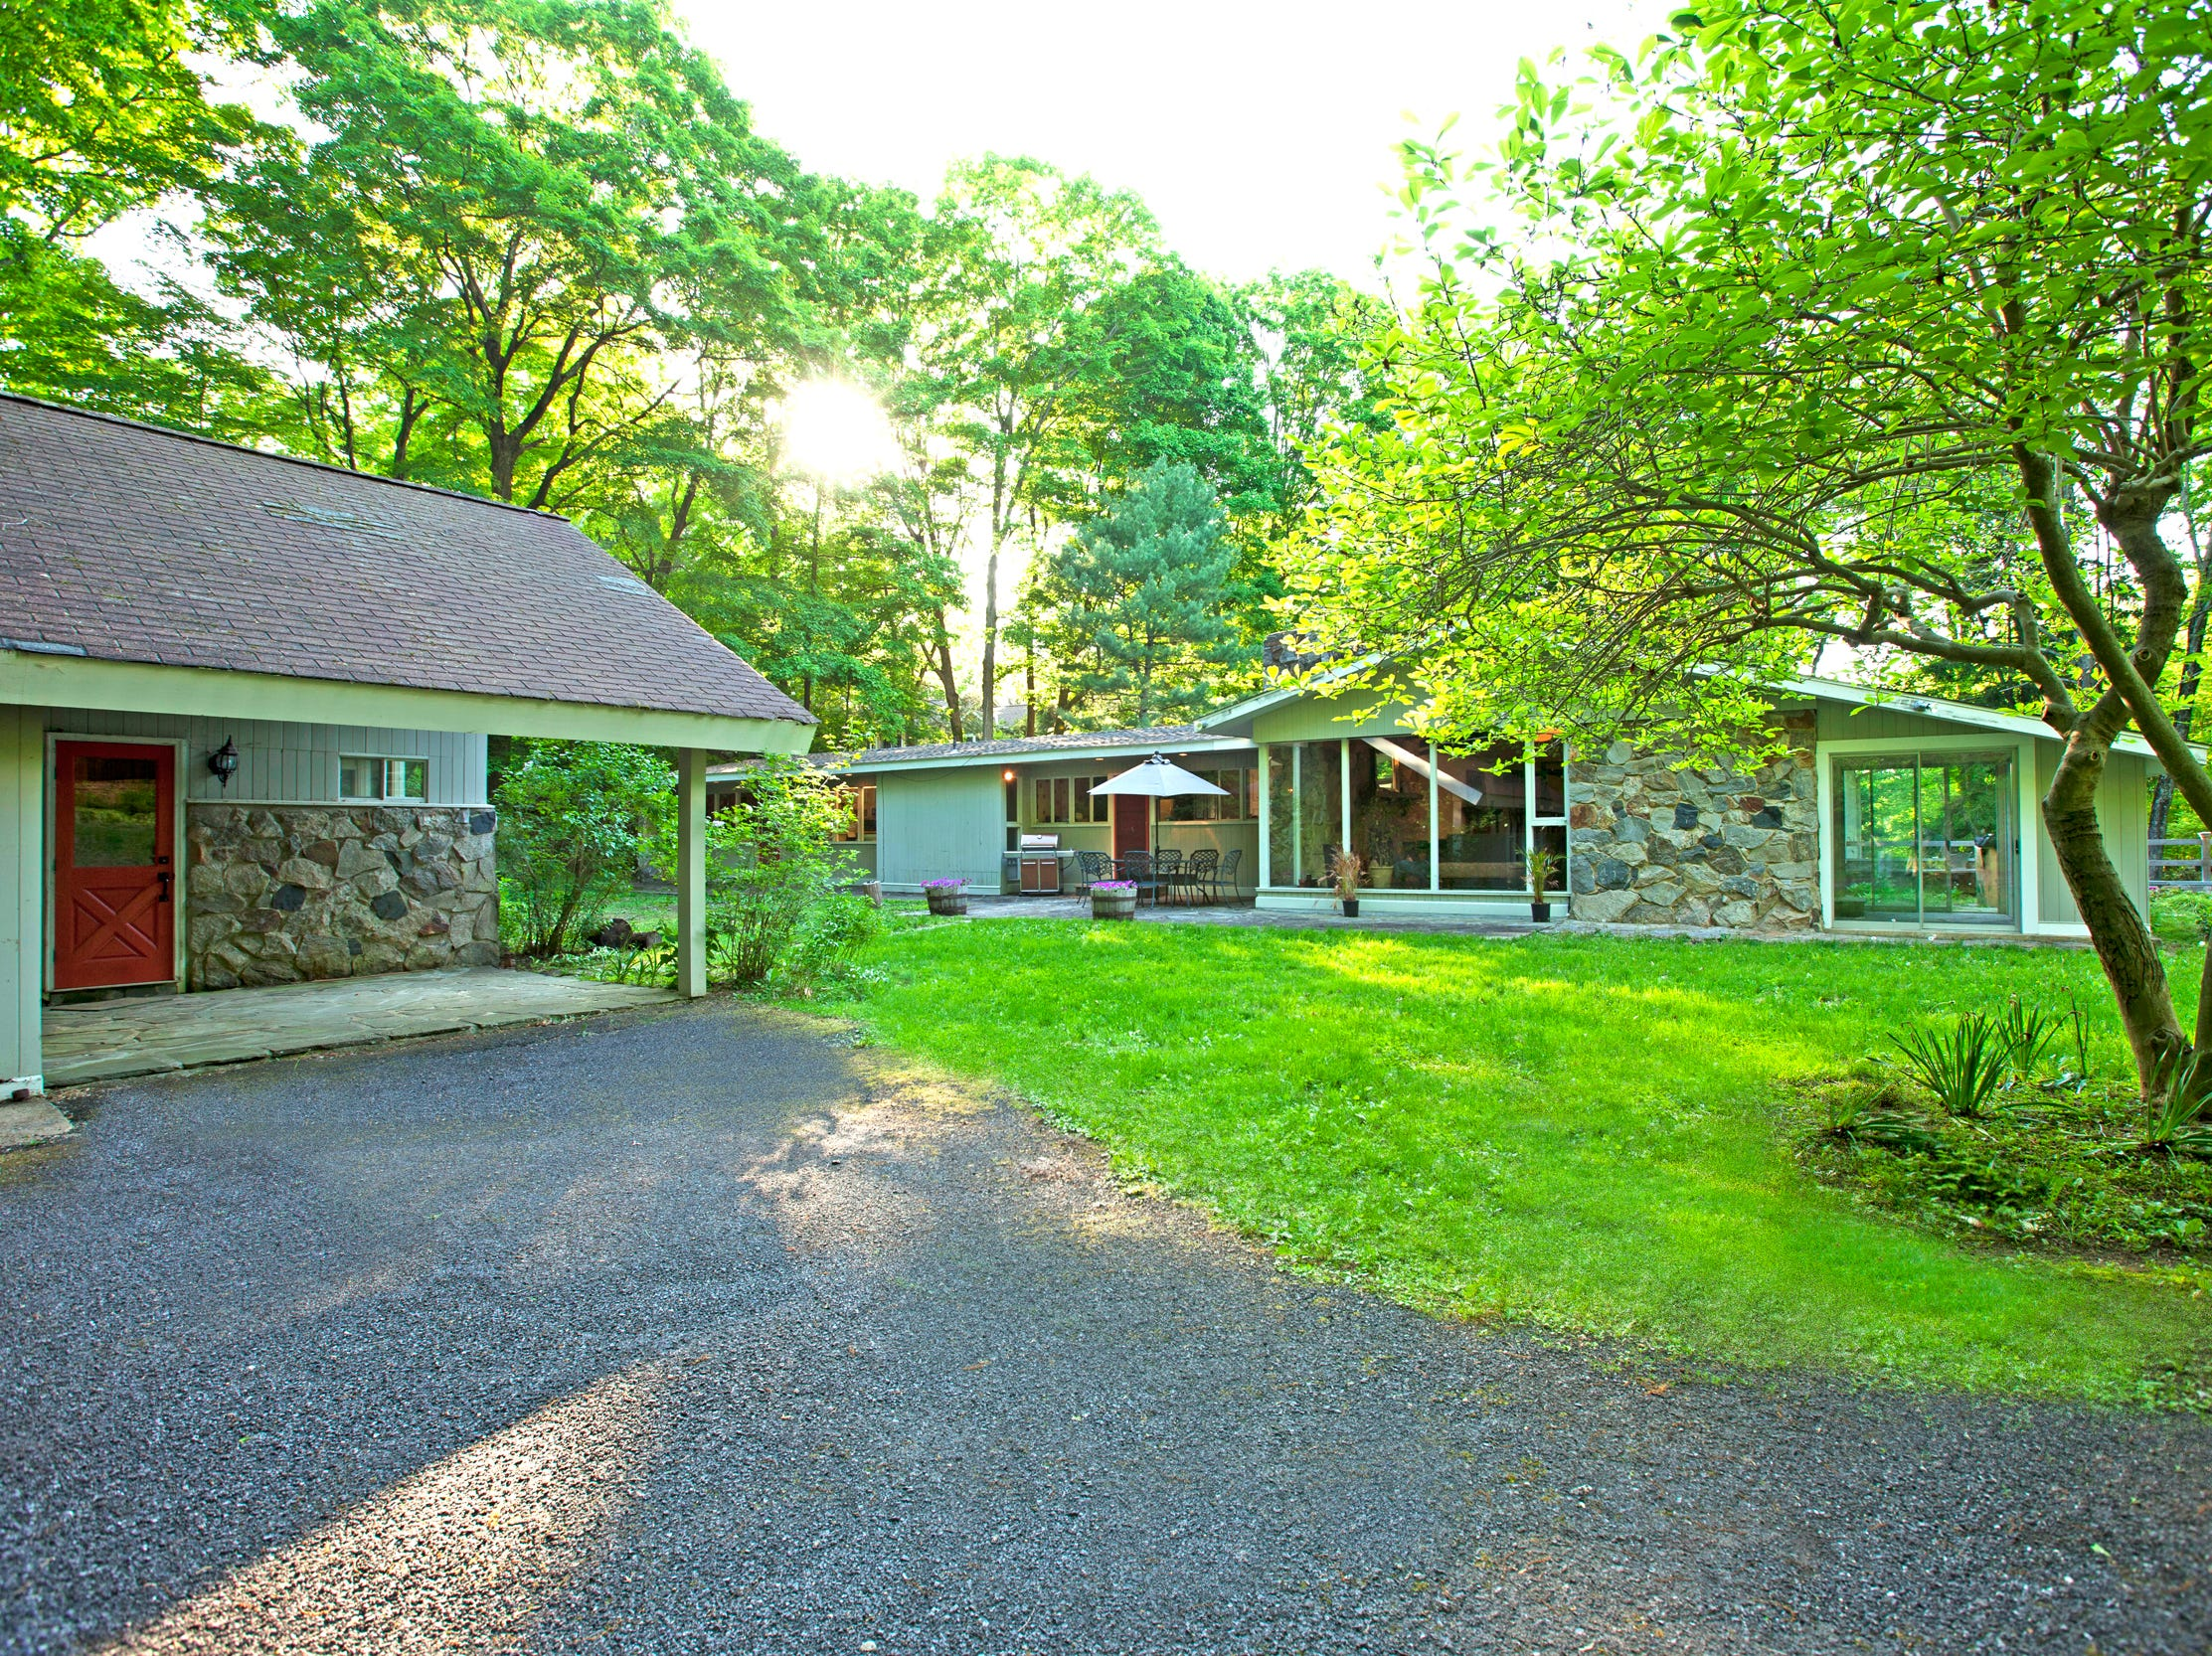 The home has an additional guest house. Howard Cosell once owned this property.